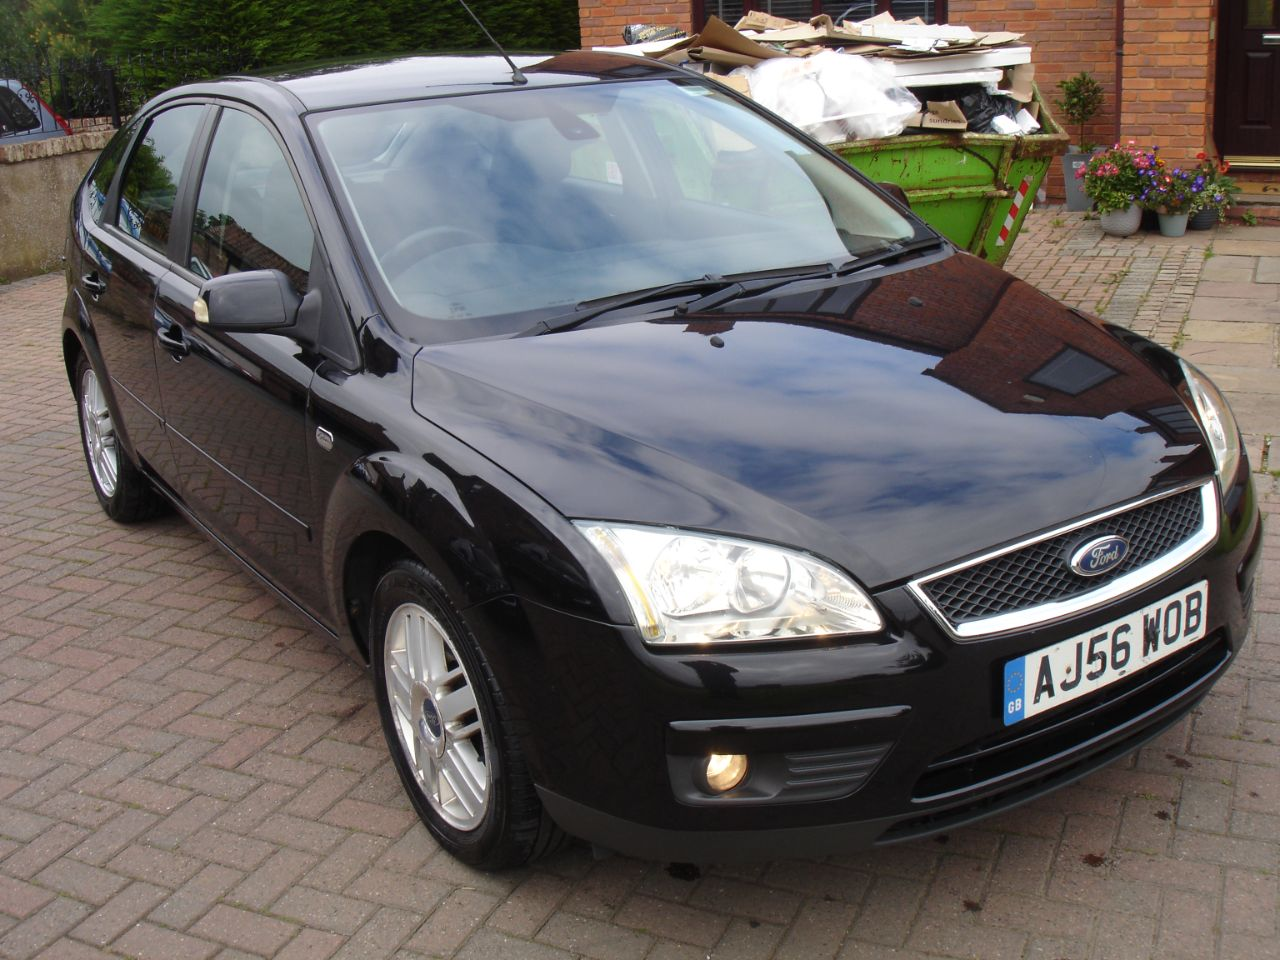 Ford Focus 2.0 TDCi Ghia 5dr [Euro 4] Hatchback Diesel Metallic Black at Level Pitch Selby